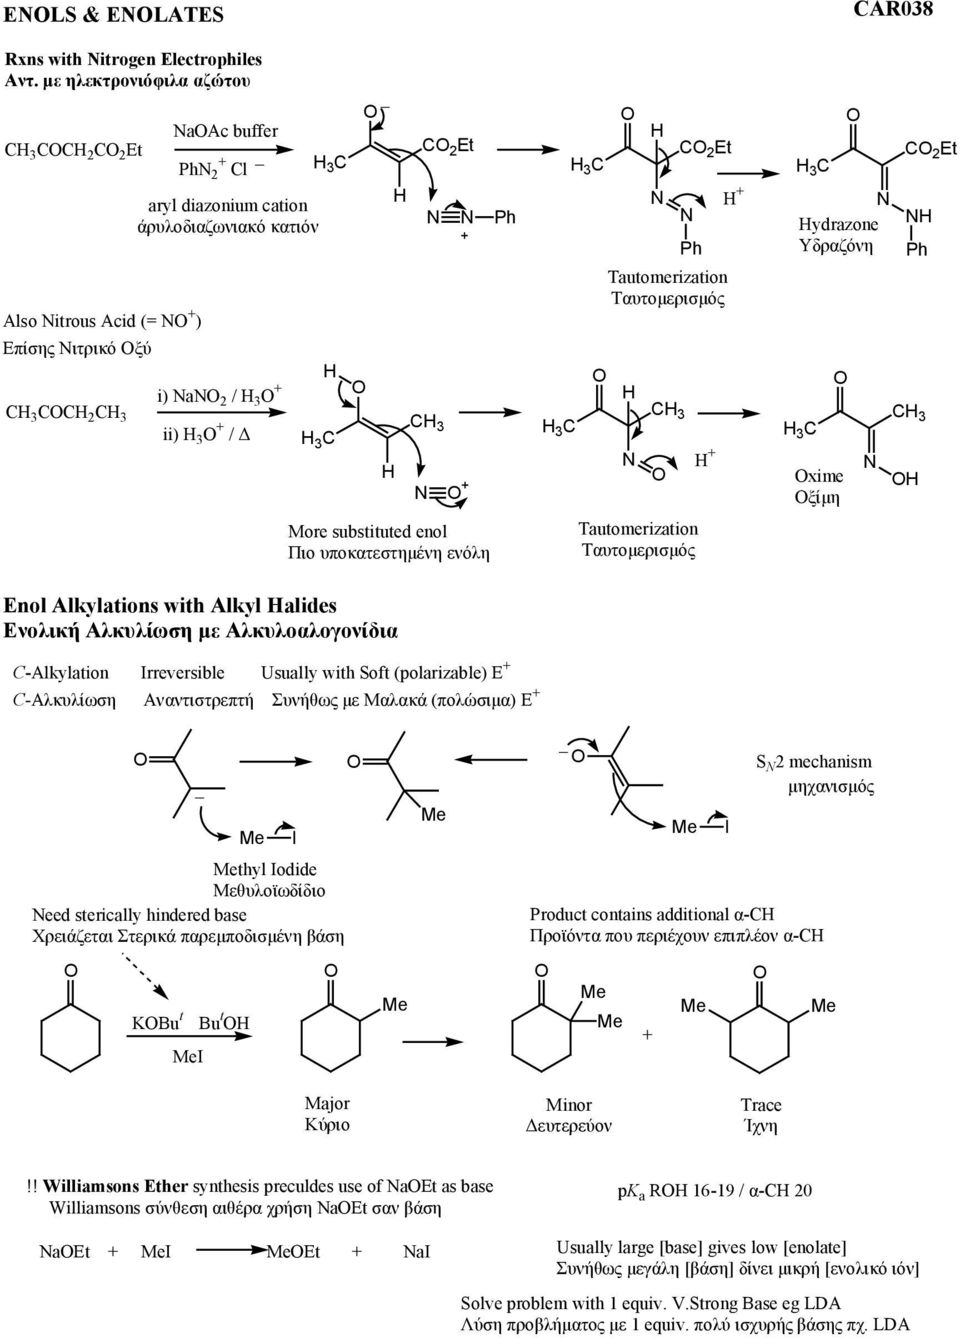 substituted enol Πιο υποκατστηµένη νόλη Enol Alkylations with Alkyl alides Ενολική Αλκυλίωση µ Αλκυλοαλογονίδια C-Alkylation Irreversible Usually with Soft (polarizable) E C-Αλκυλίωση Αναντιστρπτή